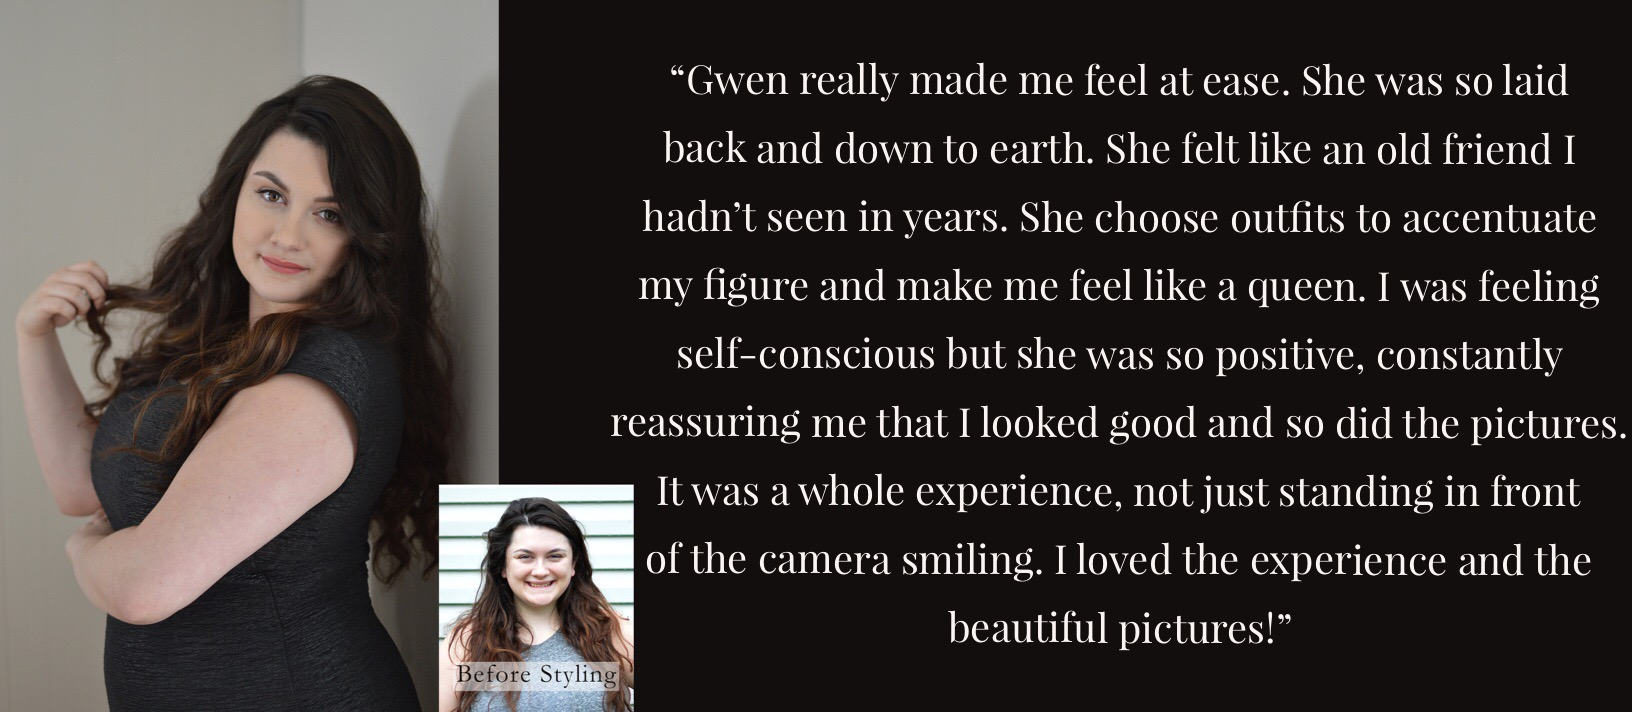 Client Andrea describes feeling comfortable with Gwendolyn Mercer Photography. Gwendolyn Mercer alleviates any worries, reassured Andrea, and was so positive. Being photographed by Gwendolyn Mercer Photography is an experience and the pictures are beautiful.